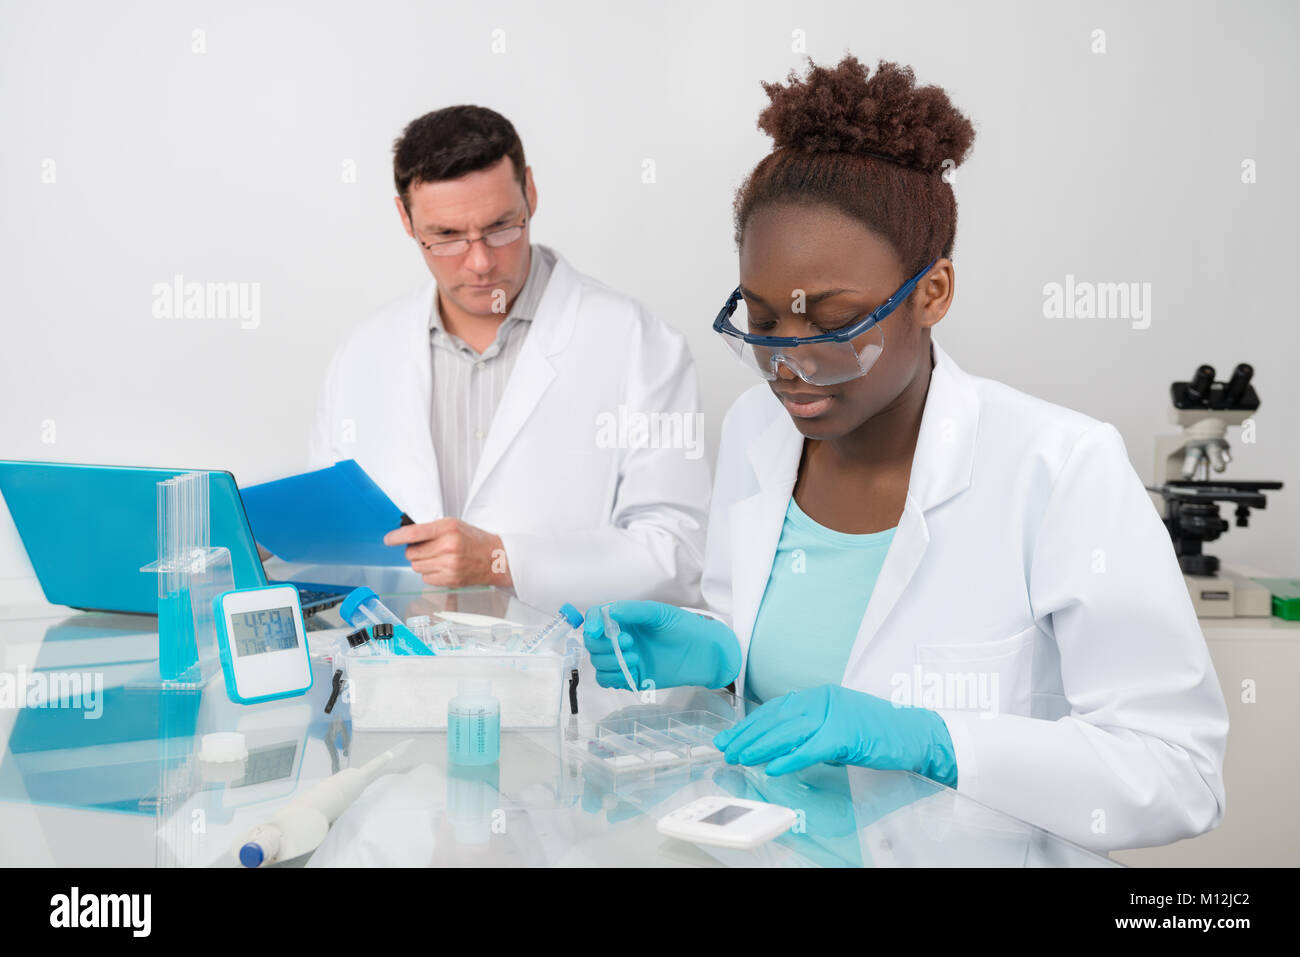 Scientists, male and female, work in research facility. Mature scientist supervises work of younger colleague. Focus - Stock Image